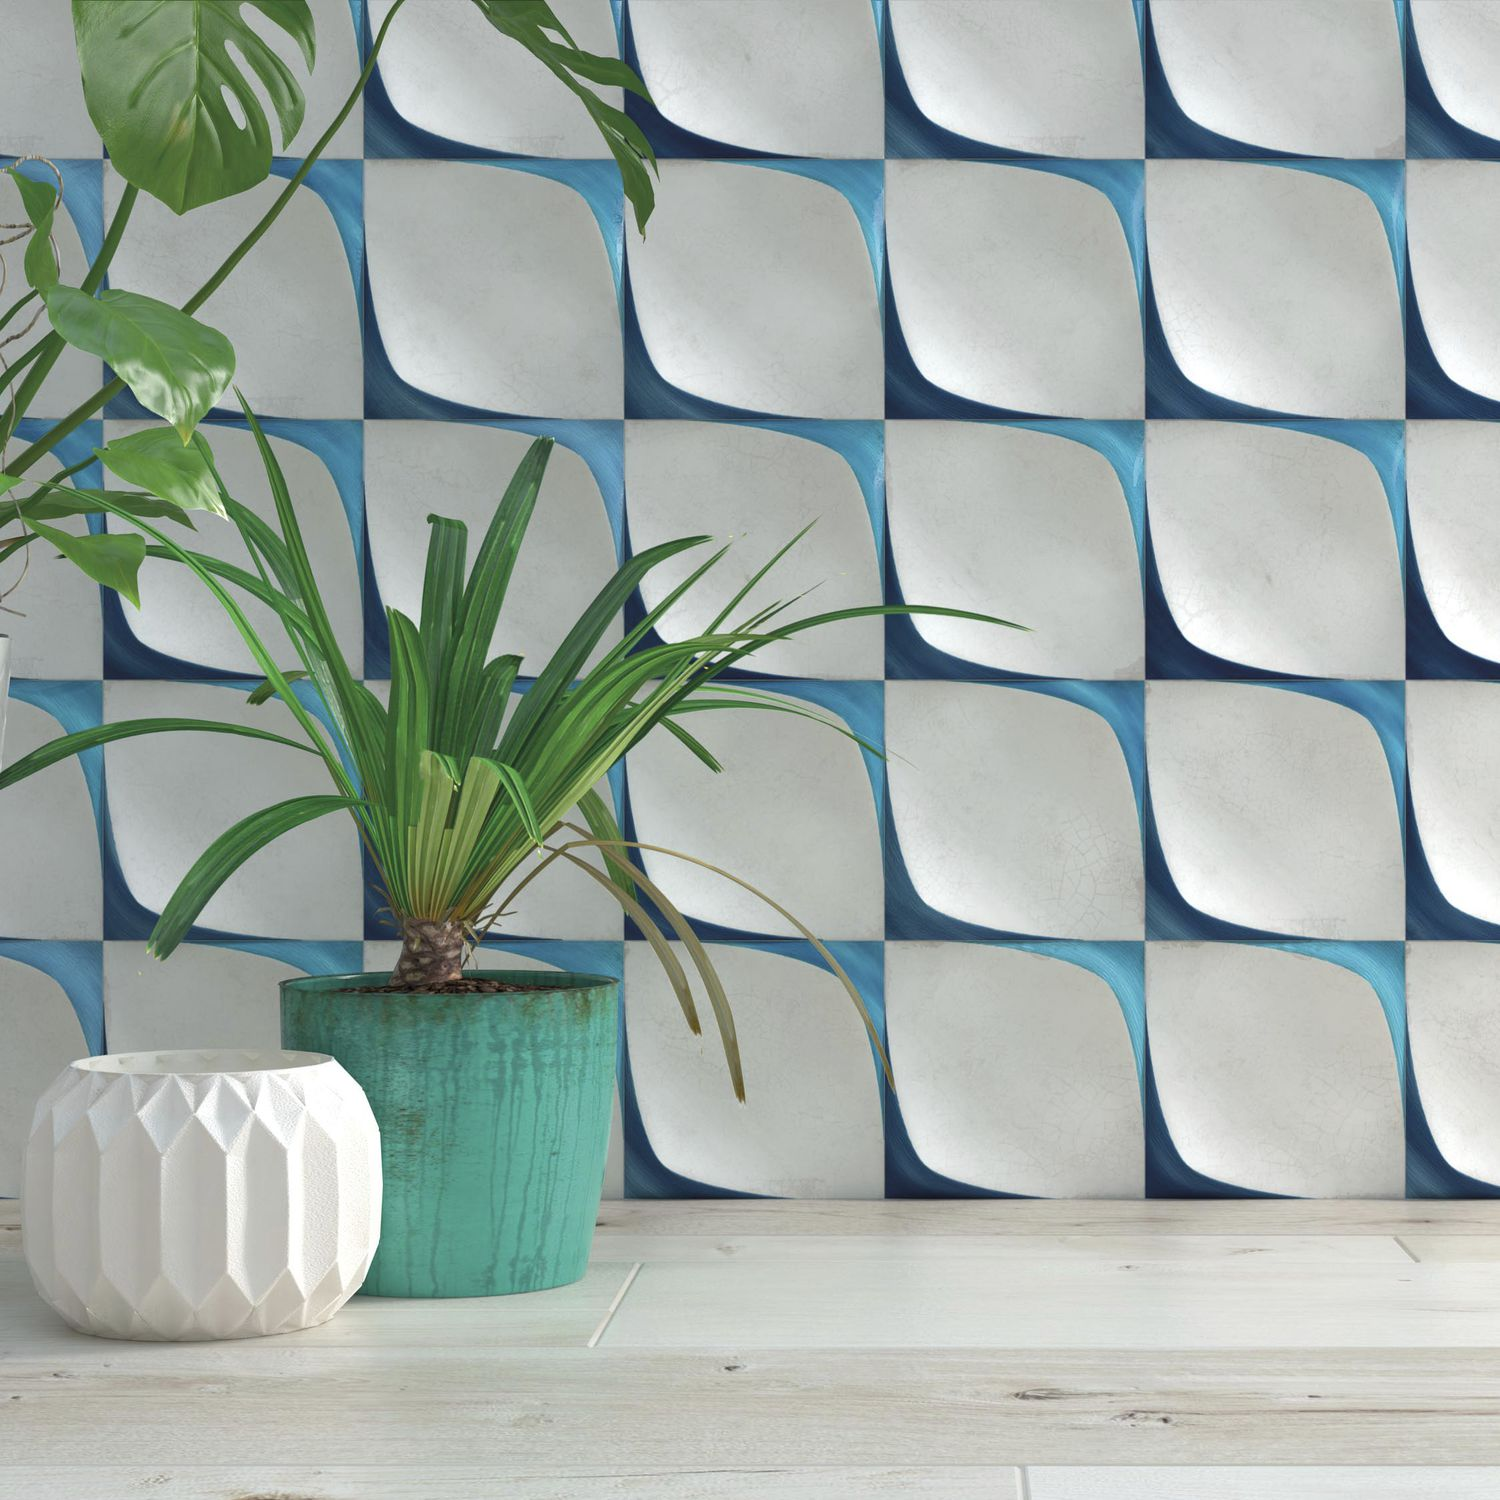 Indoor Tile / Wall / Ceramic / Geometric Pattern   Leaf Wall Decor